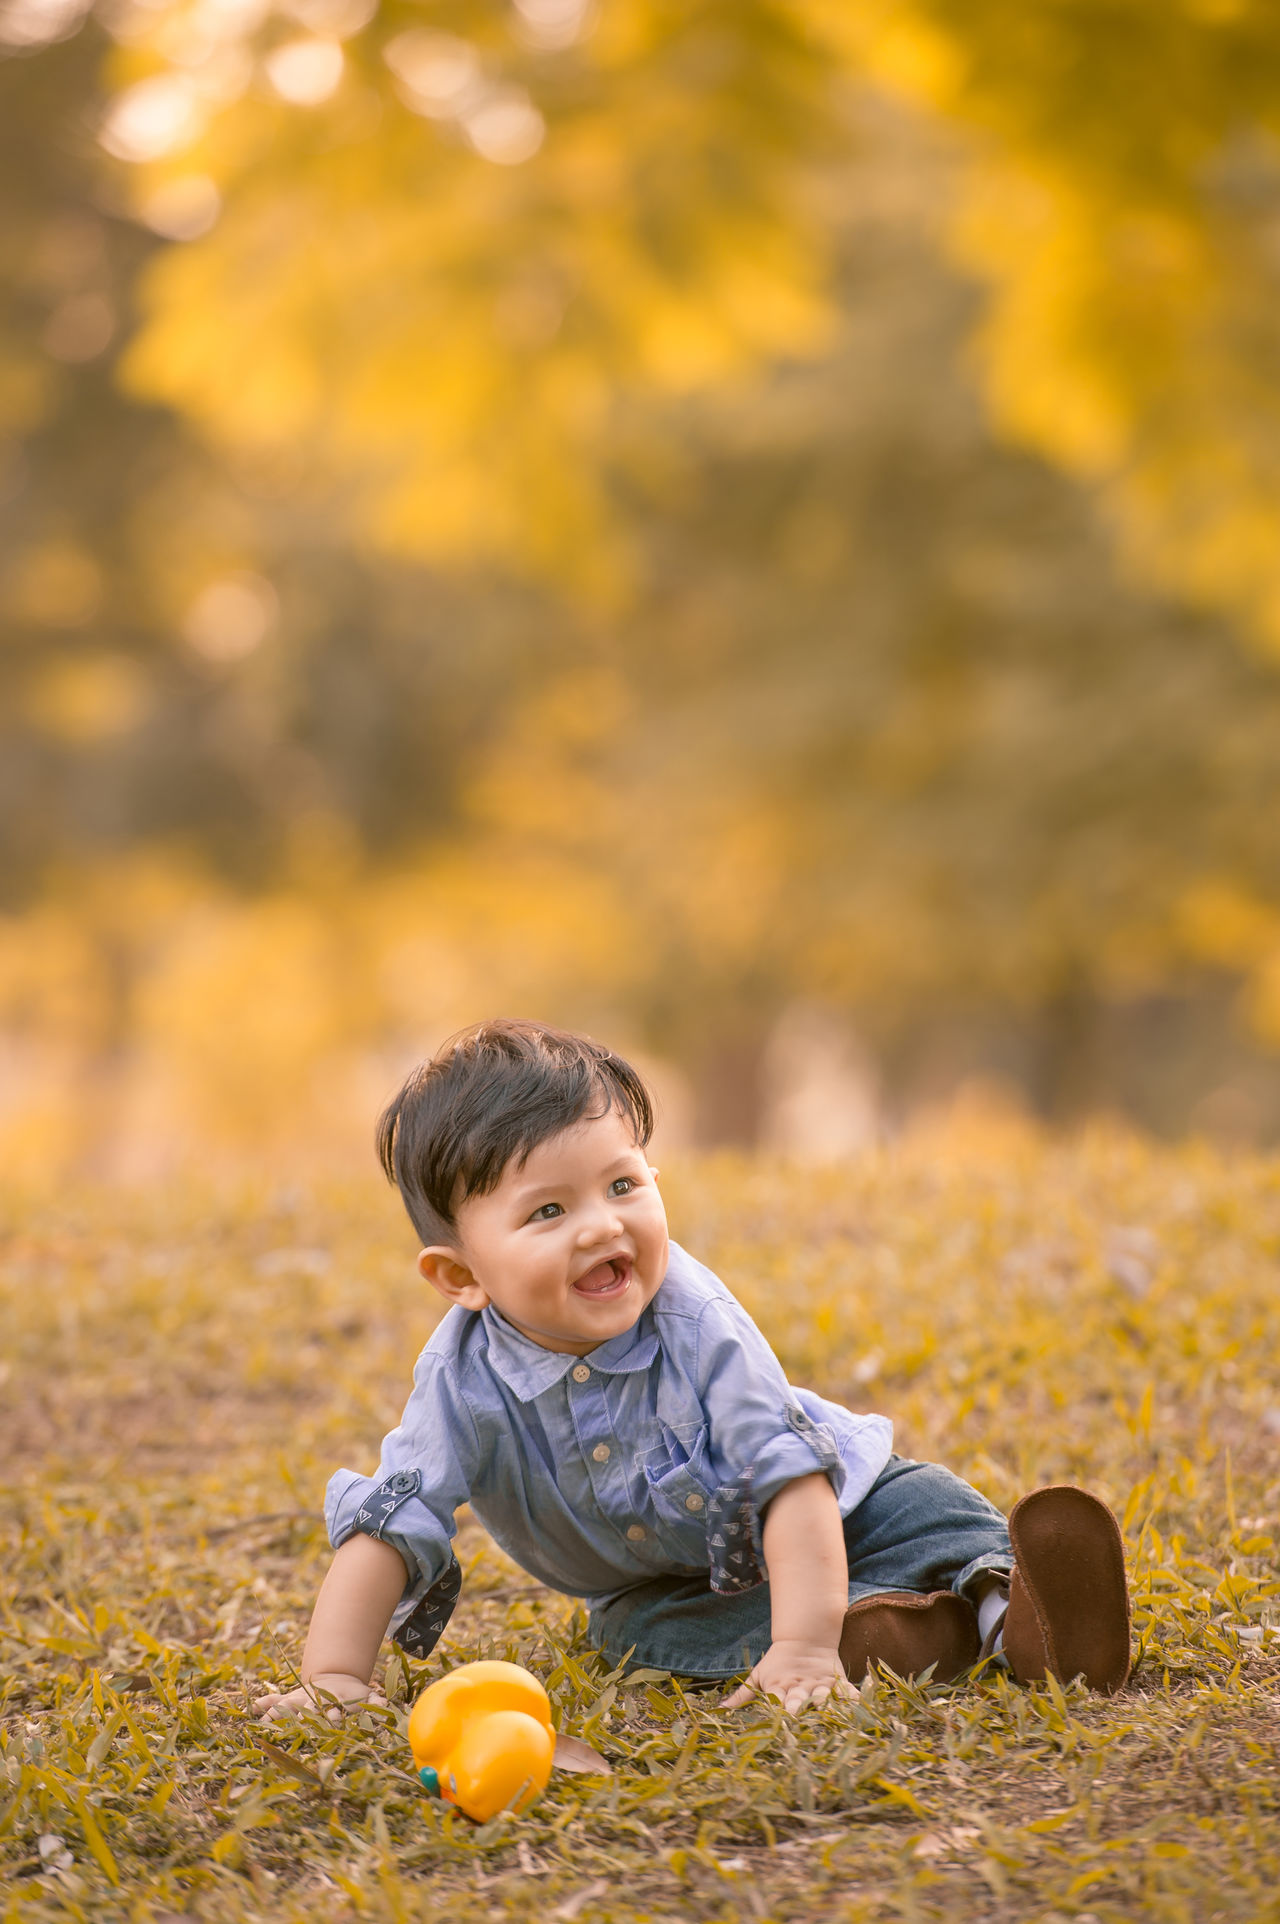 Chinese Boy ASIA Asian  Asian Family Autumn Boys Casual Clothing Change Childhood Chinese Day Full Length Leaf Leisure Activity Lifestyles Looking At Camera Nature One Person Orange Color Outdoors Playing Portrait Real People Sitting Smiling Yellow